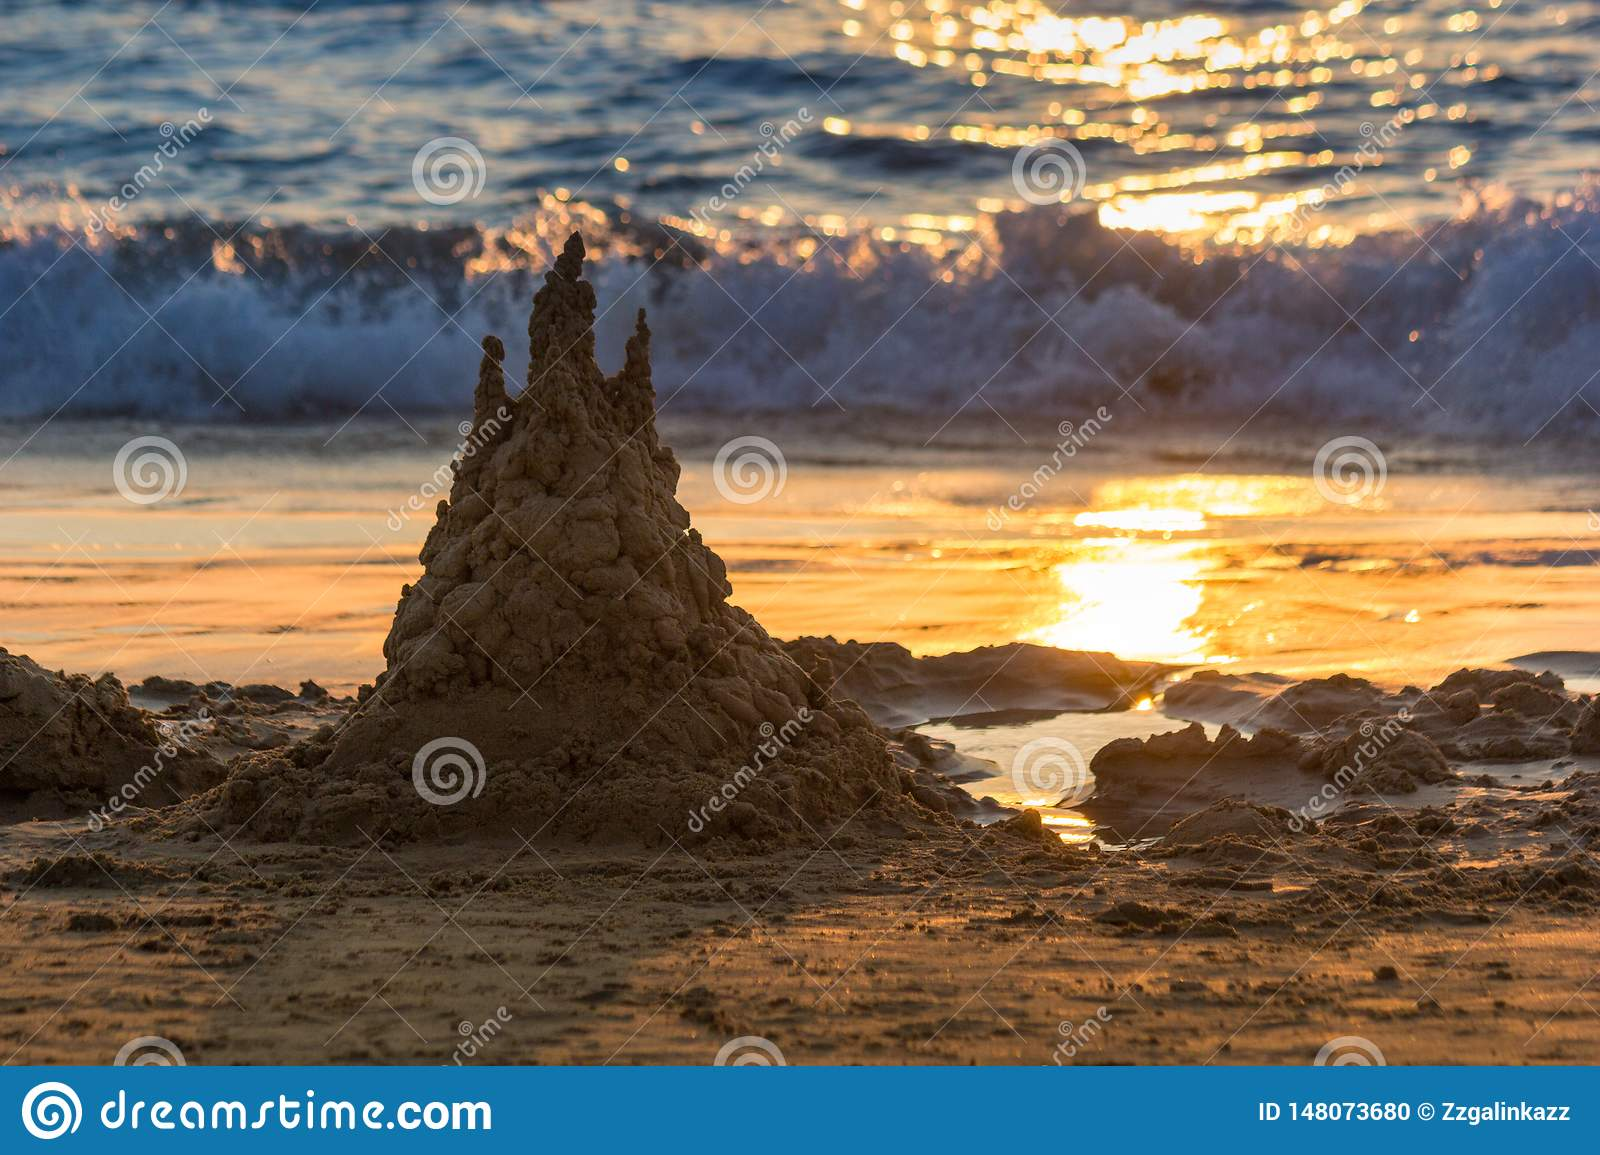 Sand castle is in sunset. Solar track is in the sand. Background